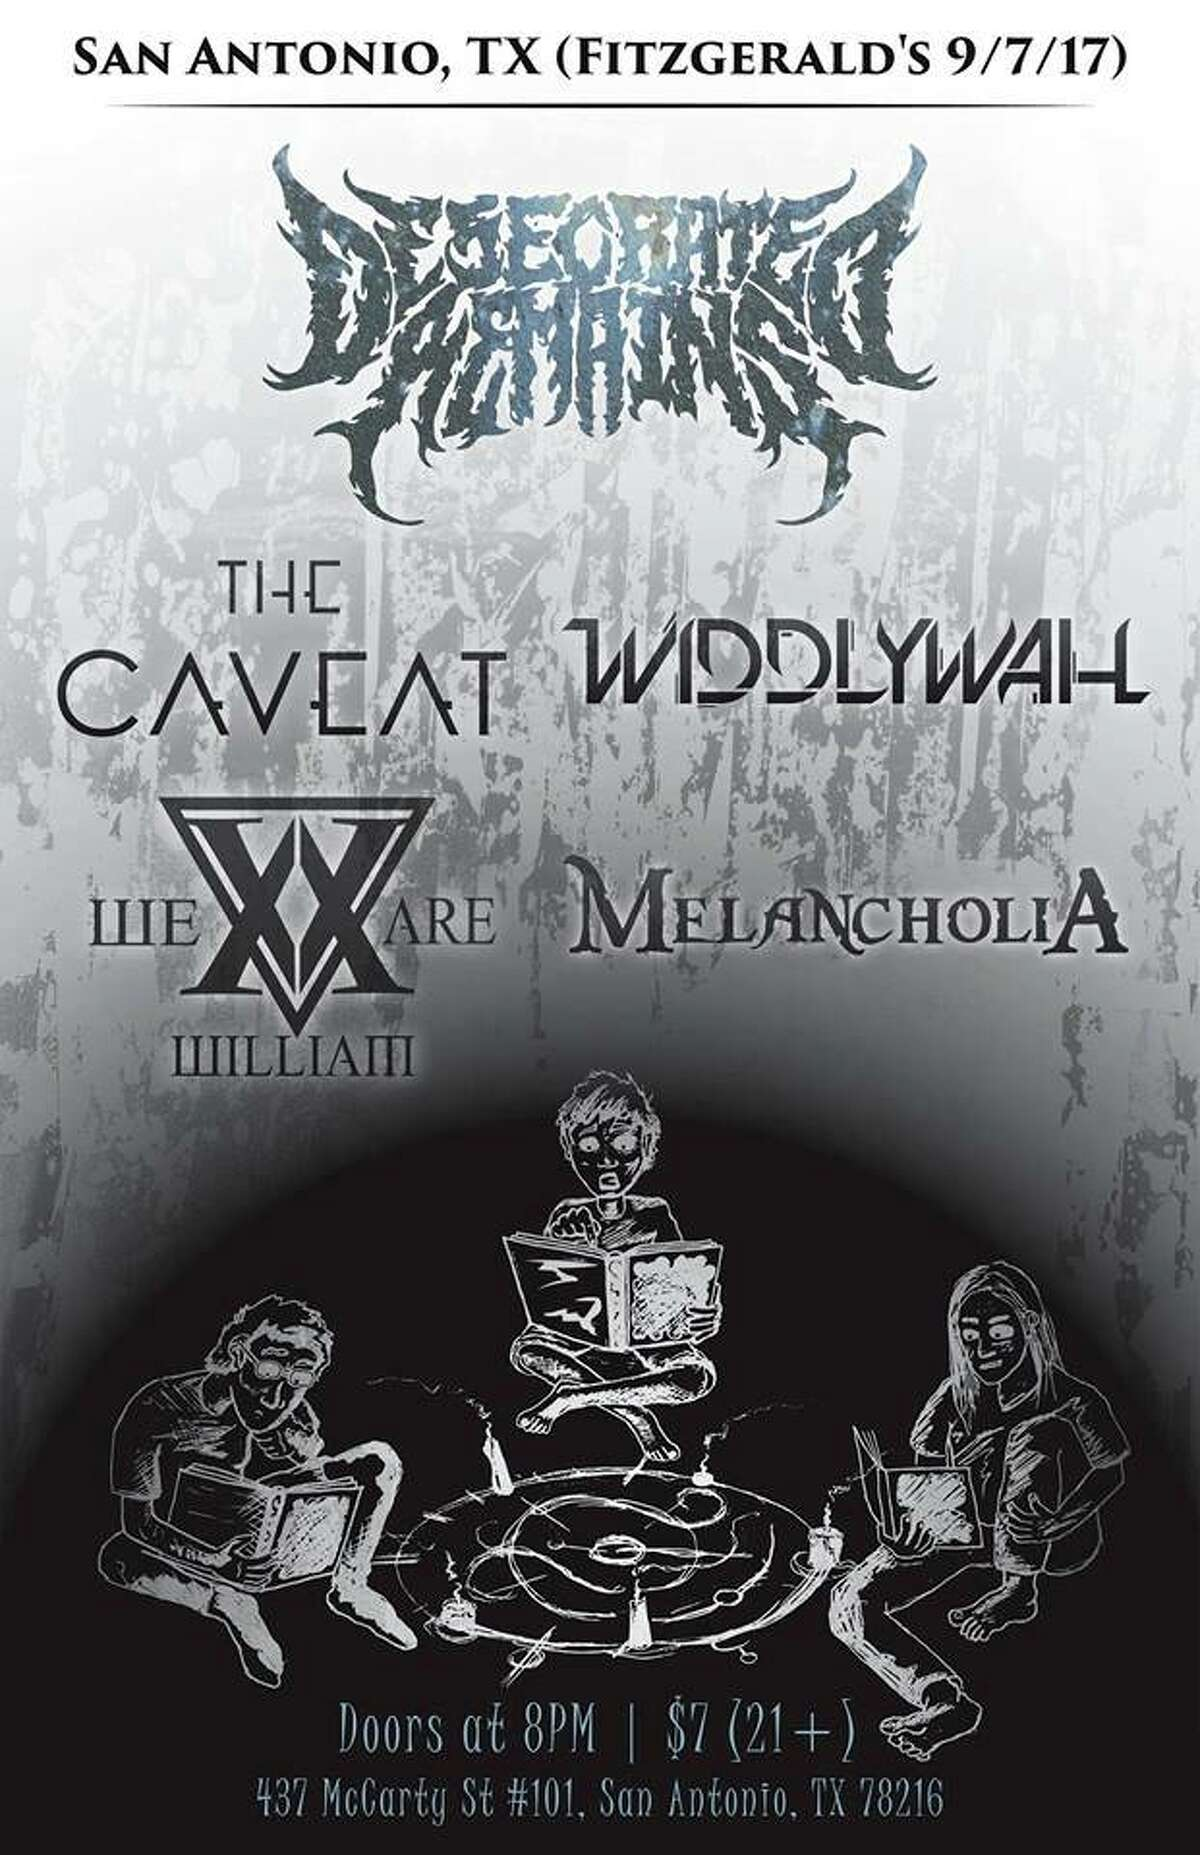 The leader in the clubhouse for Best Tour Name of 2017 has to be Band Names You Can Read, which features progressive Colorado bands We Are William (an instrumental outfit), The Caveat and WiddlyWah. Also on the bill are San Antonio metal band Melancholia and Corpus Christi's Desecrated Remains, a death-metal band whose logo on the show poster suggests they didn't get the memo. Doors at 8 p.m., Fitzgerald's Bar & Live Music, 437 McCarty Ave., Suite 101. $7, fitzrocks.com -- Robert Johnson